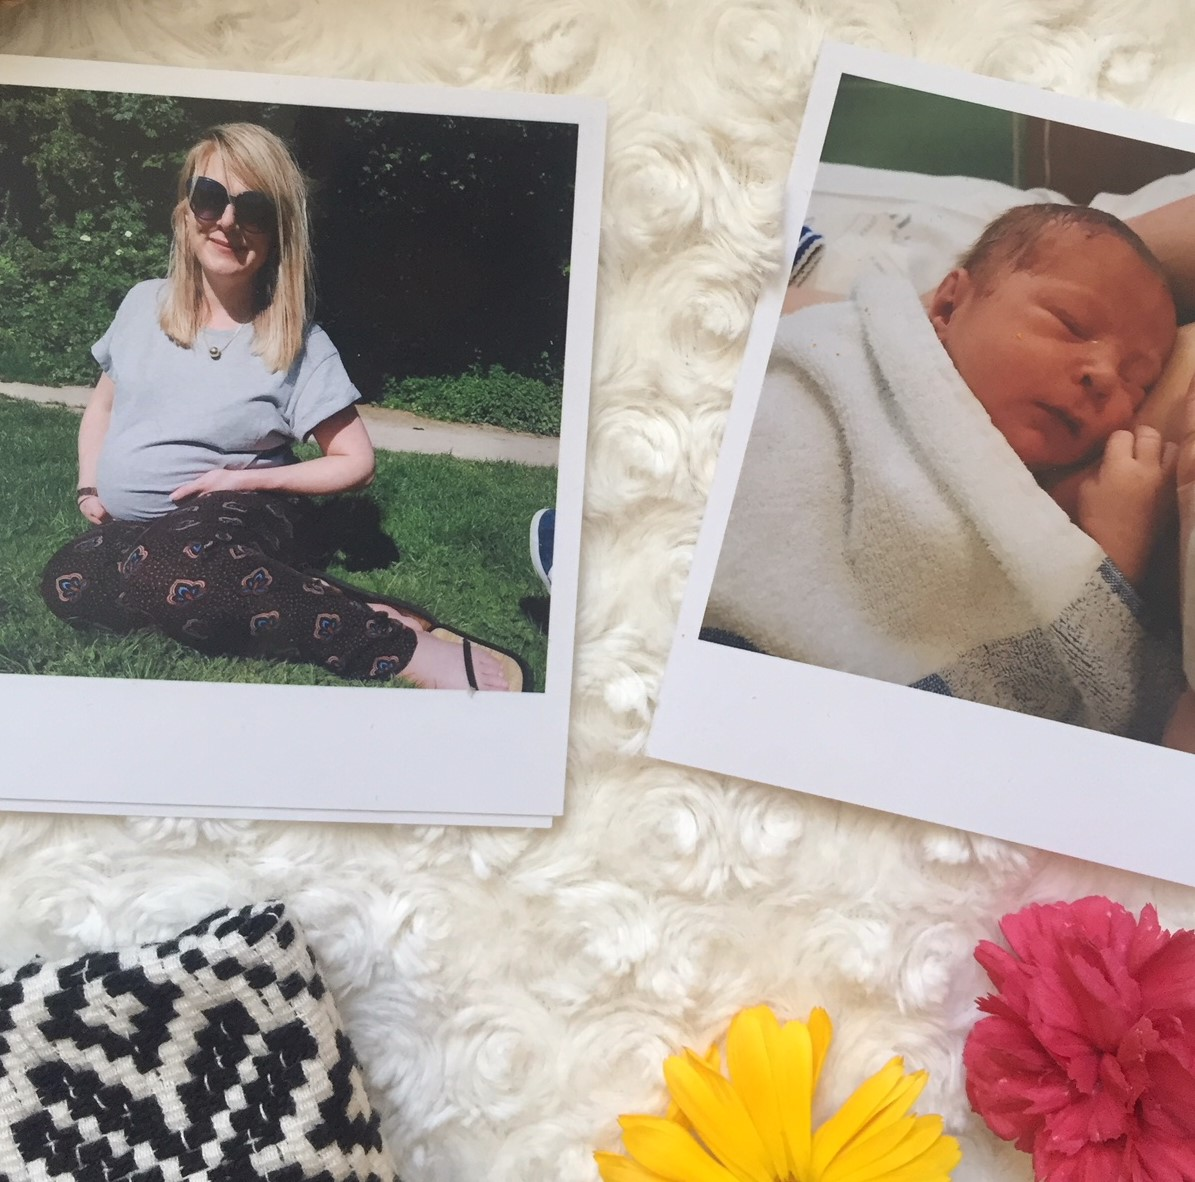 polaroids of a pregnant woman and newborn